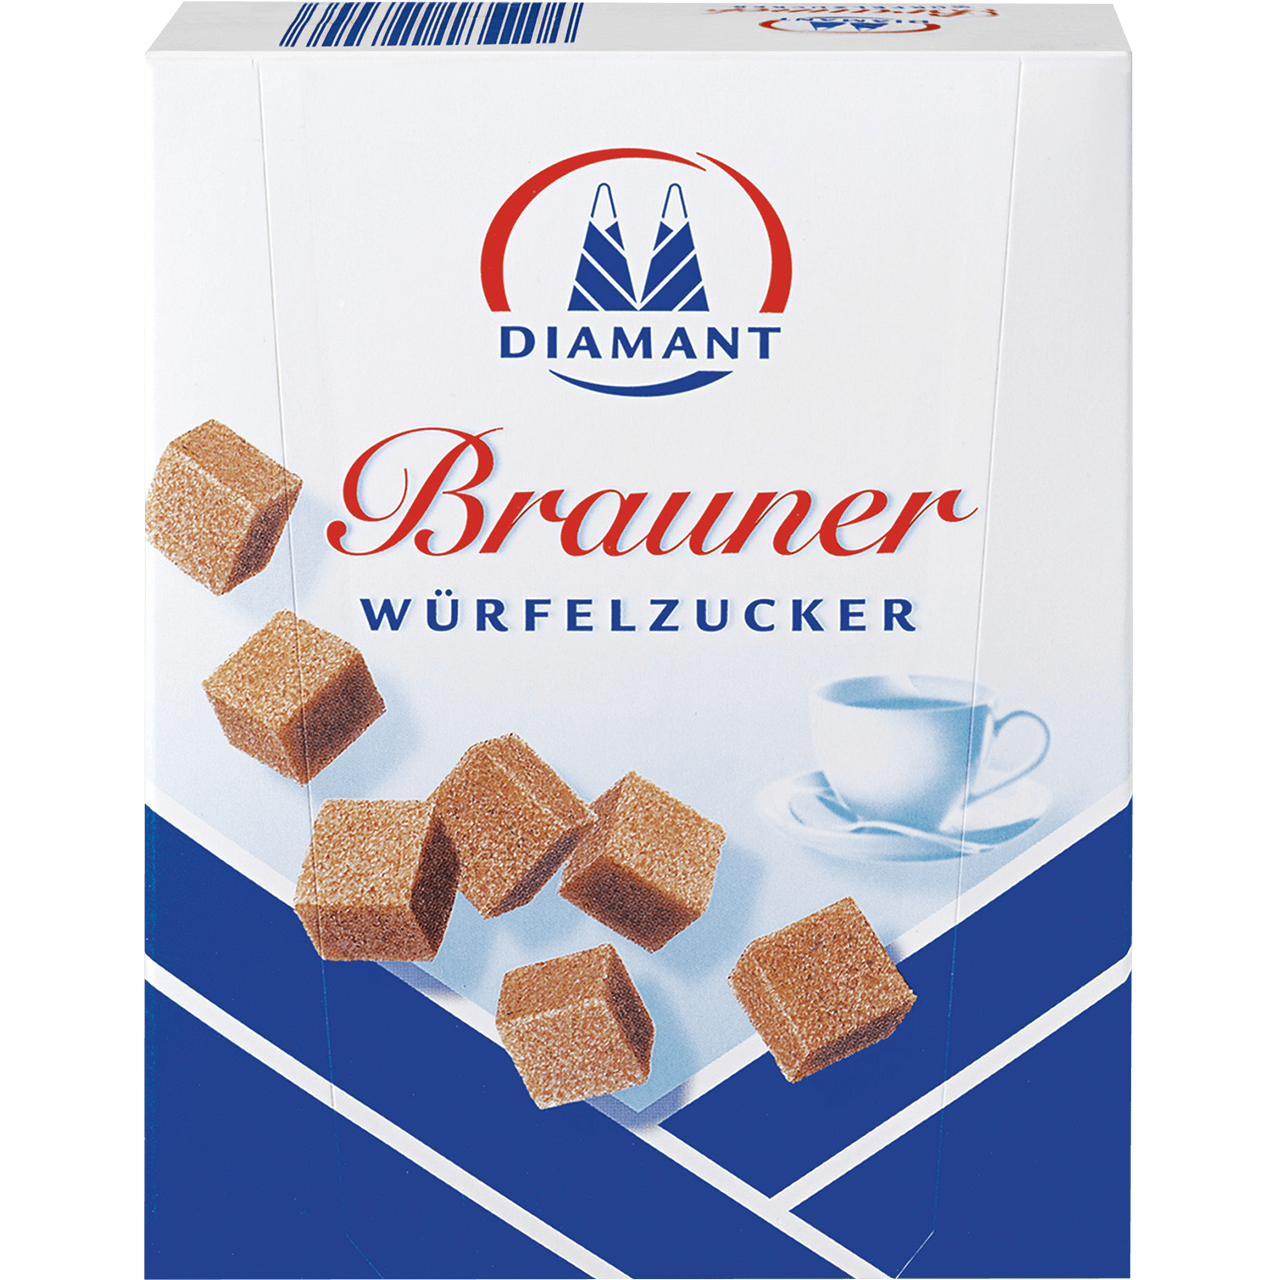 https://www.diamant-zucker.de/images/default-source/default-album/produkte/produkt-bilder/brauner-zucker/desktop/braunerwürfelzucker_desktop51ca4dbd-8969-4229-b533-69348b939afb.png?sfvrsn=64c32bf6_3